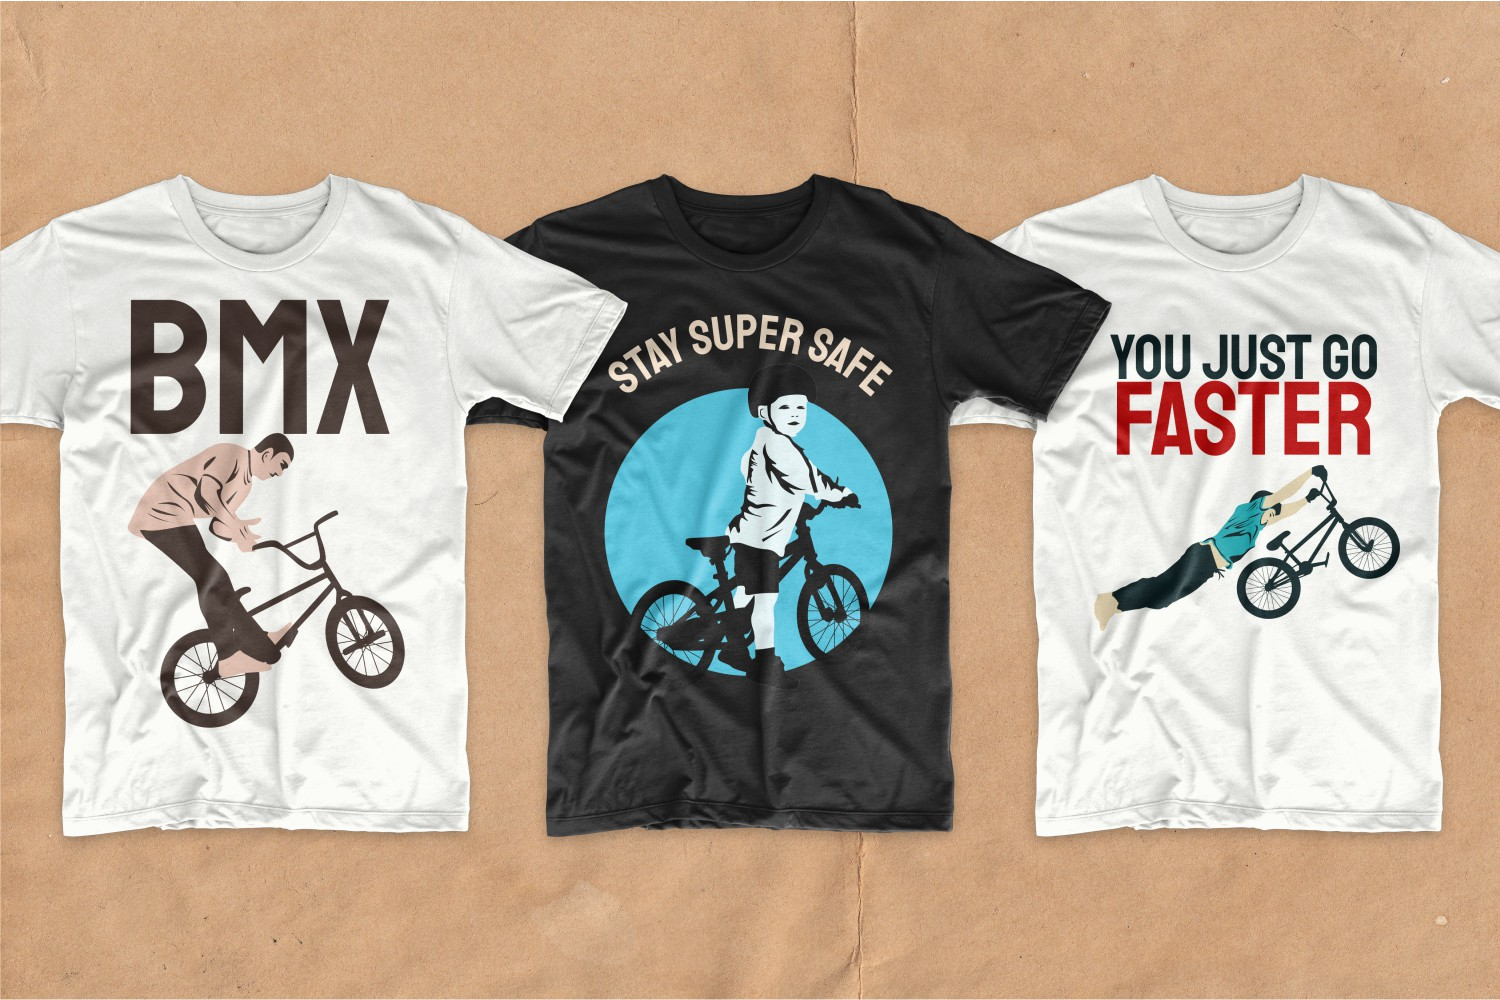 T-shirts featuring active children on bicycles.